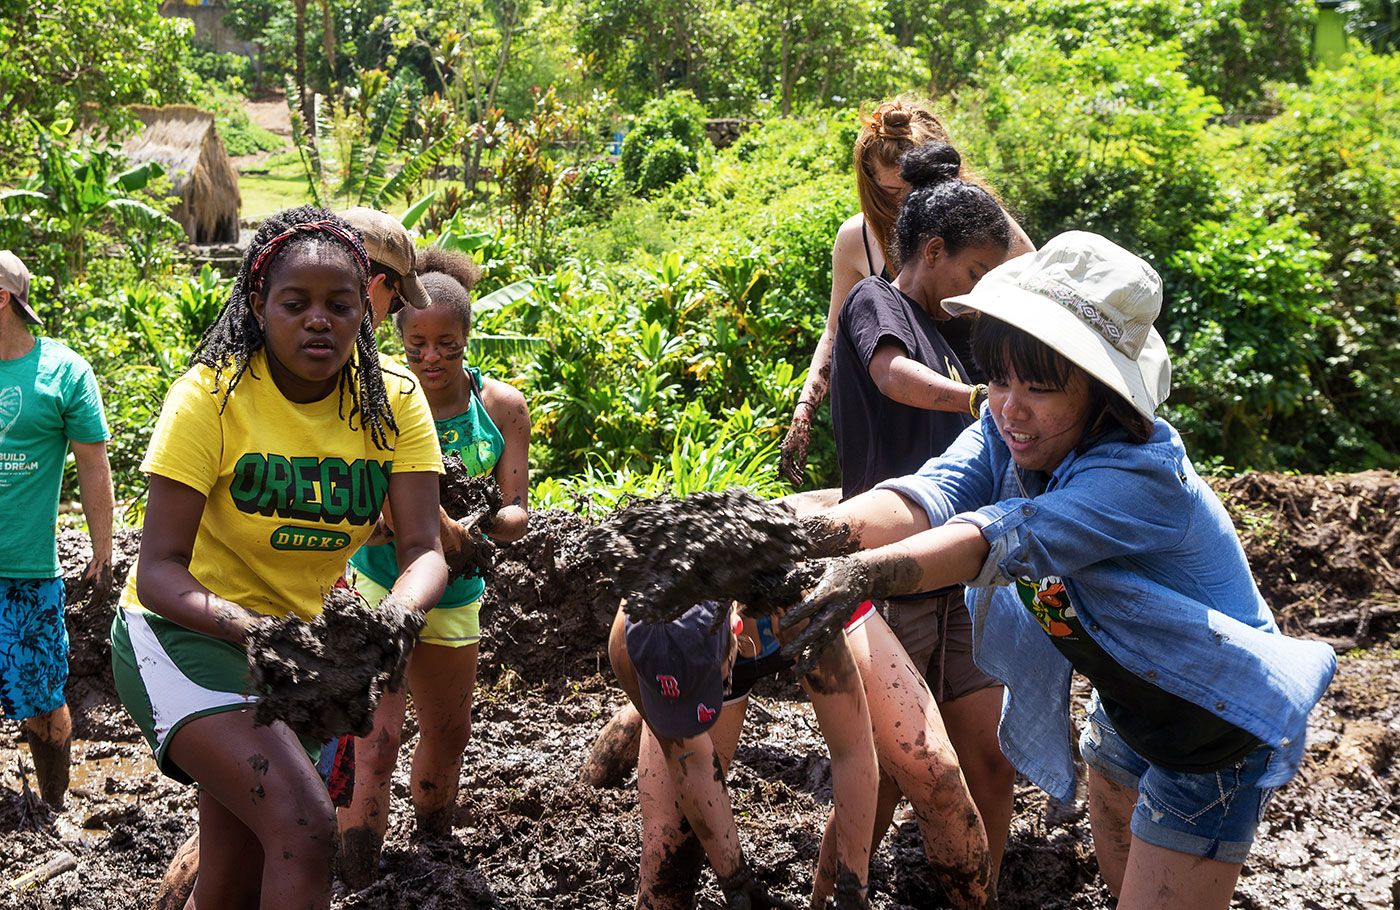 Students knee deep in mud pulling out roots from invasive plant species.